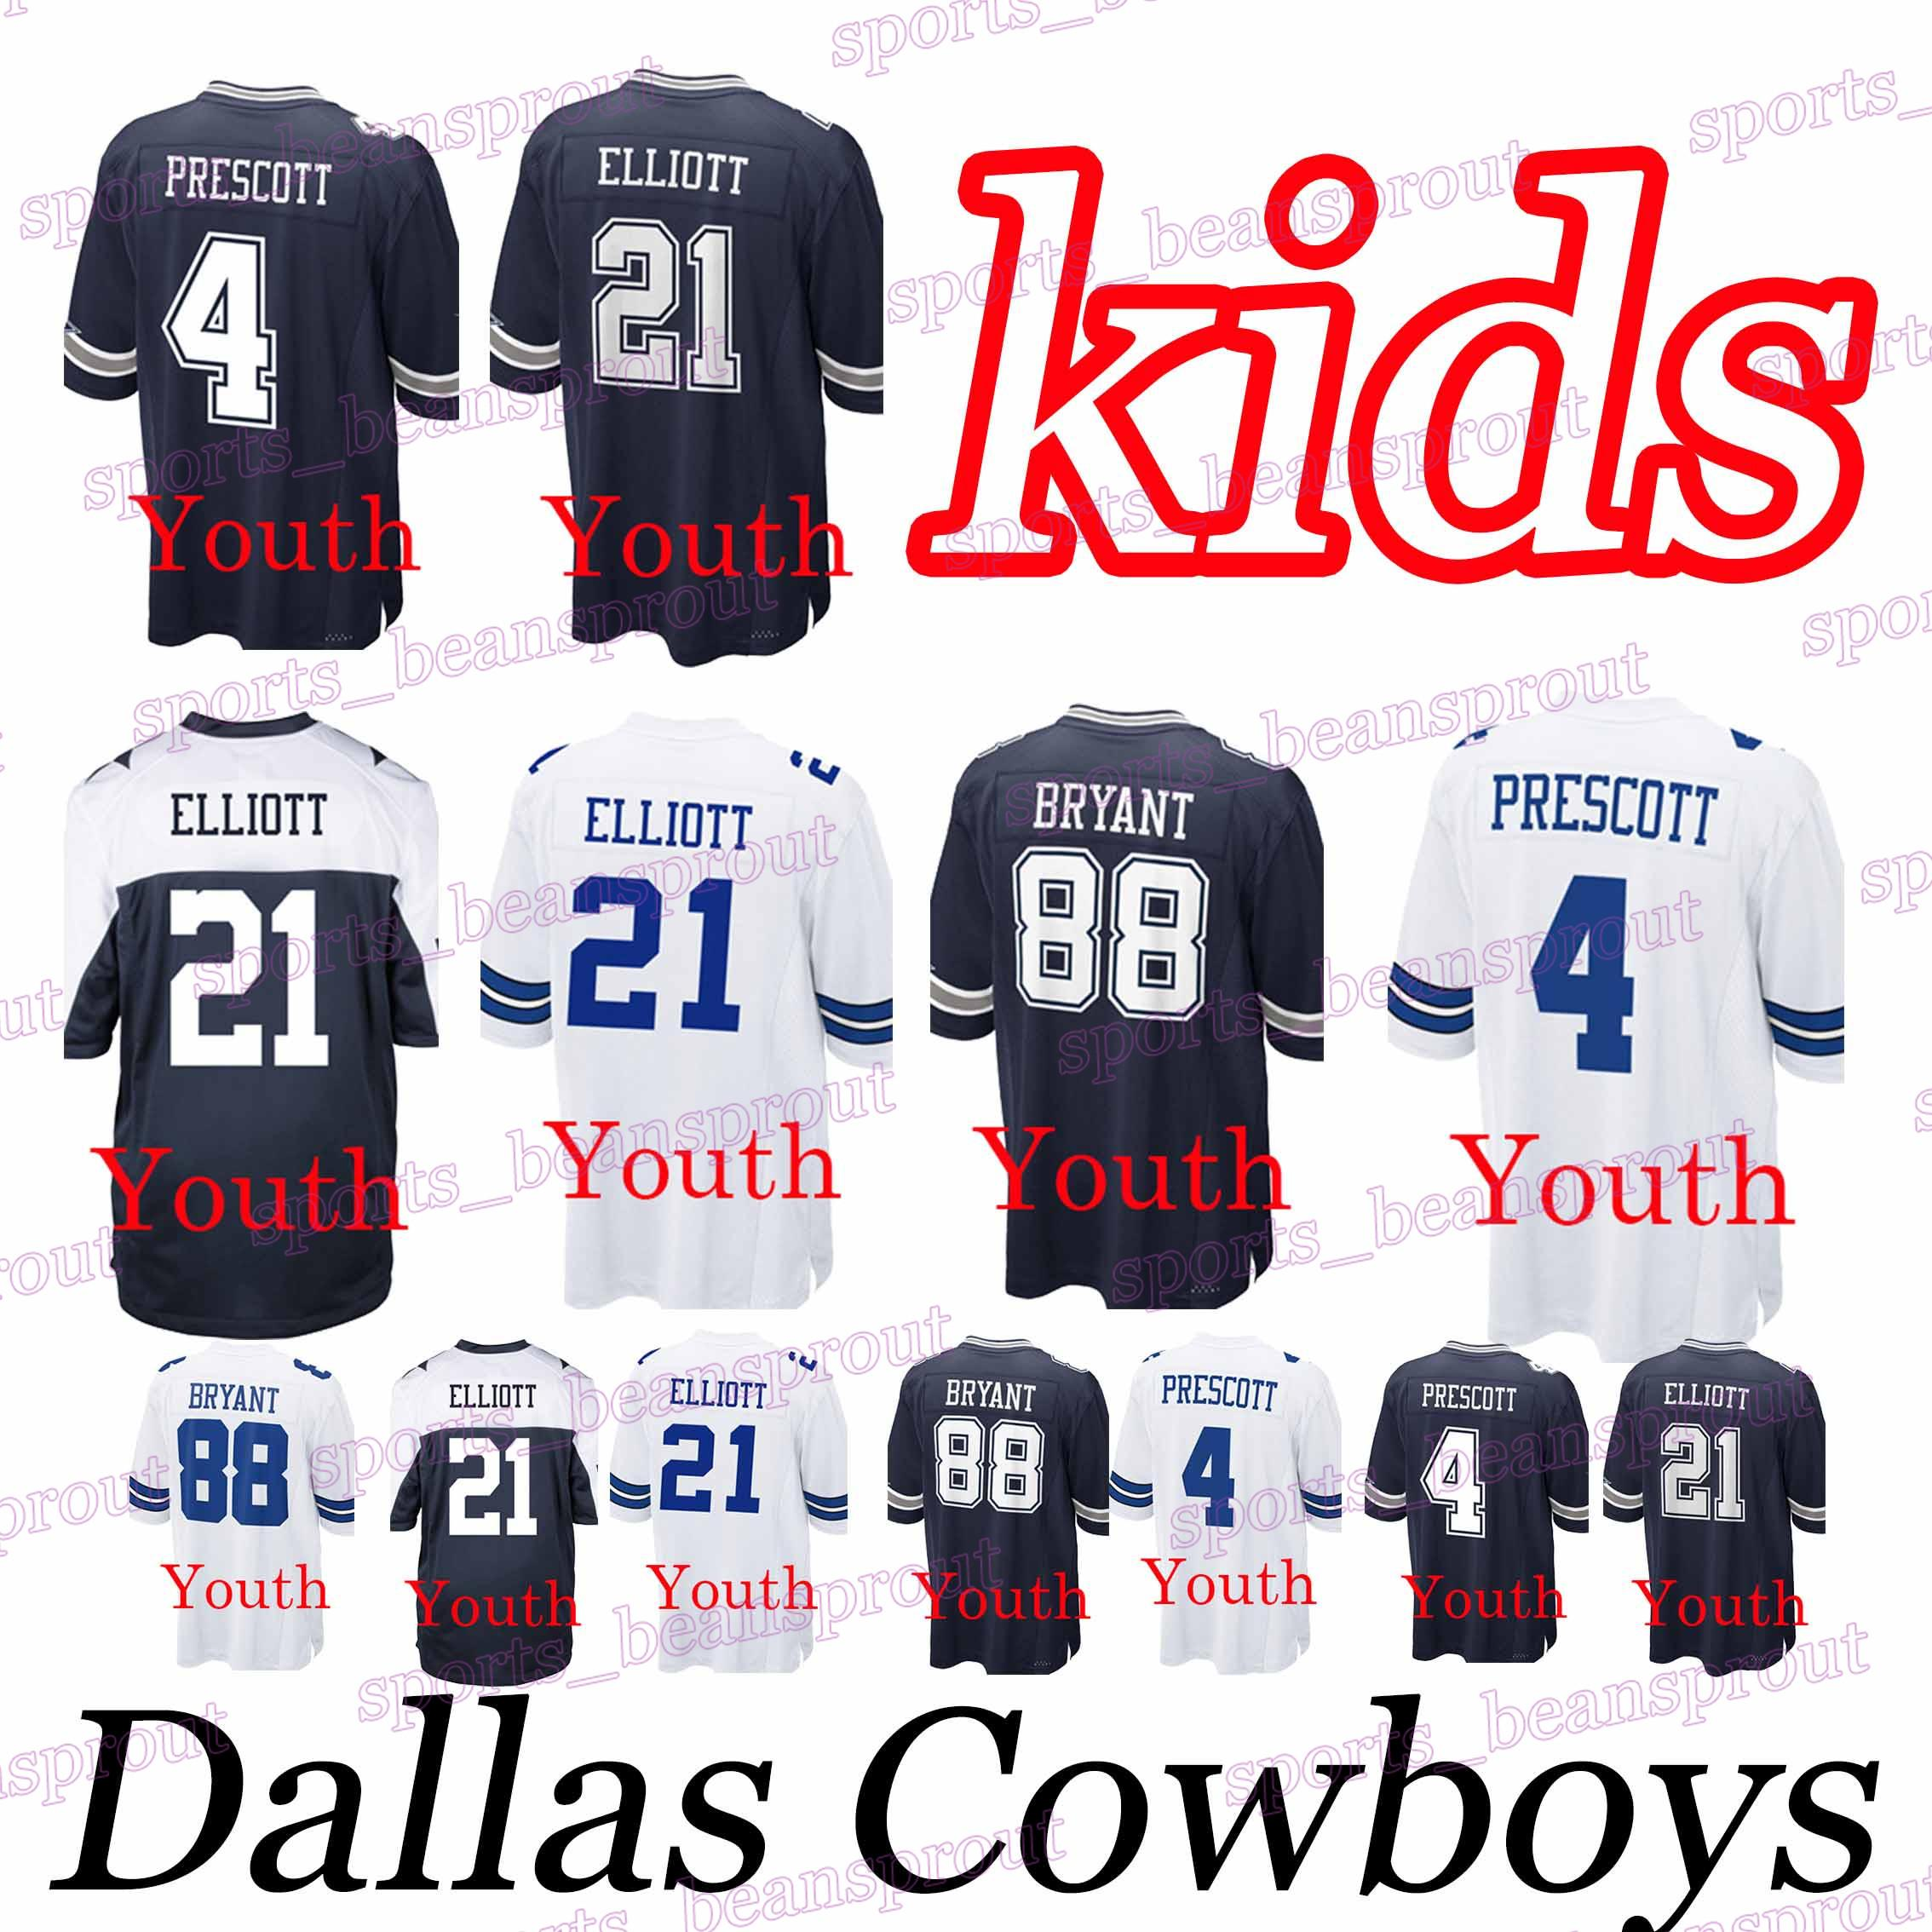 2b49a5adf11 ezekiel elliott t shirt youth 2019 YOUTH Dallas Cowboys JERSEYS 21 ...